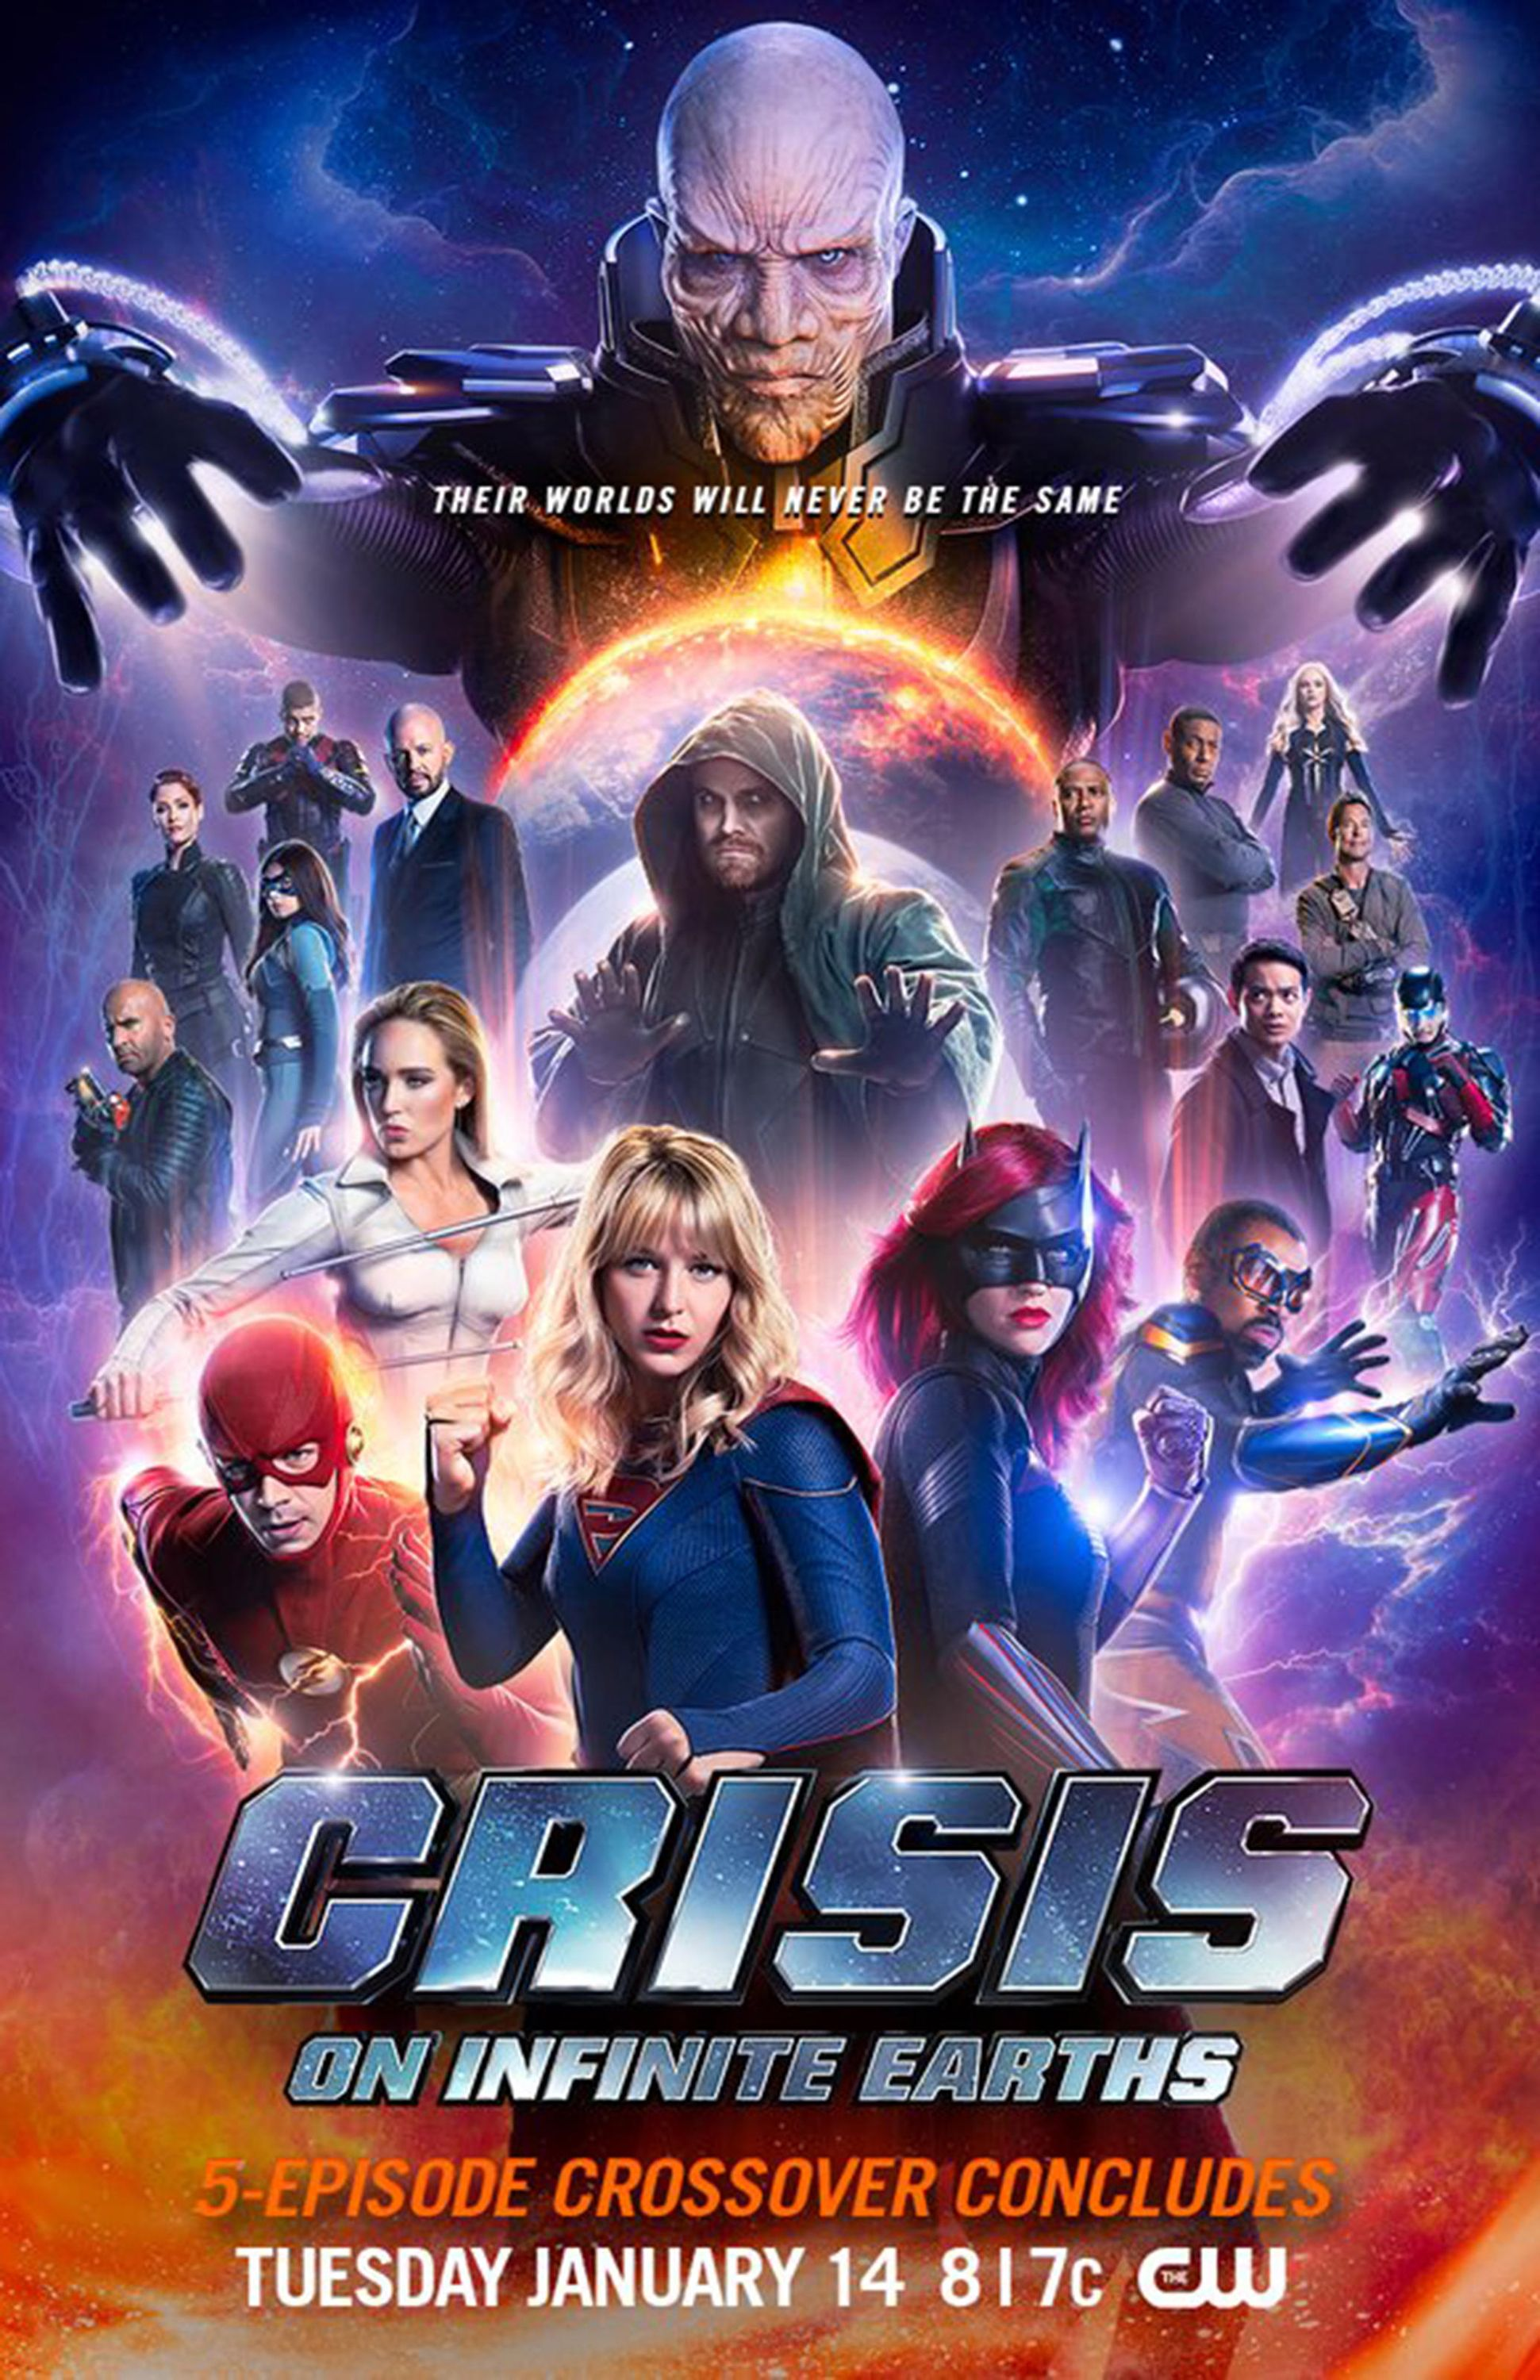 Arrowverse's Crisis on Infinite Earths boss explains how Worlds of DC cameo happened